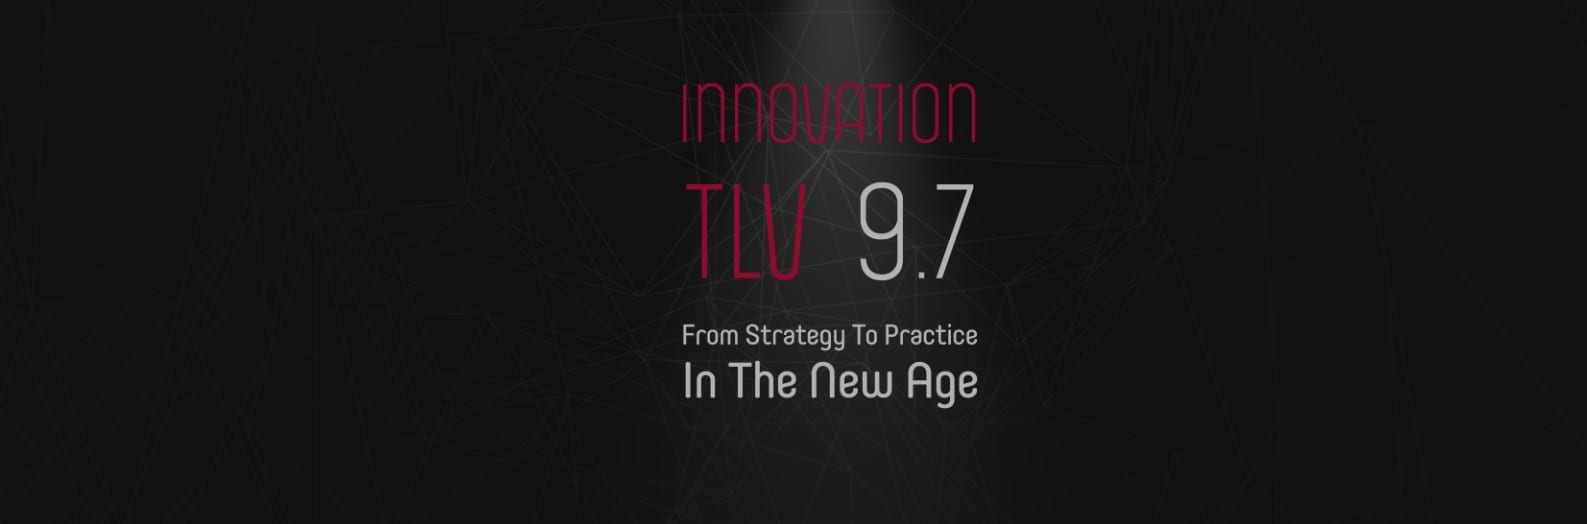 Innovation tlv netcraft